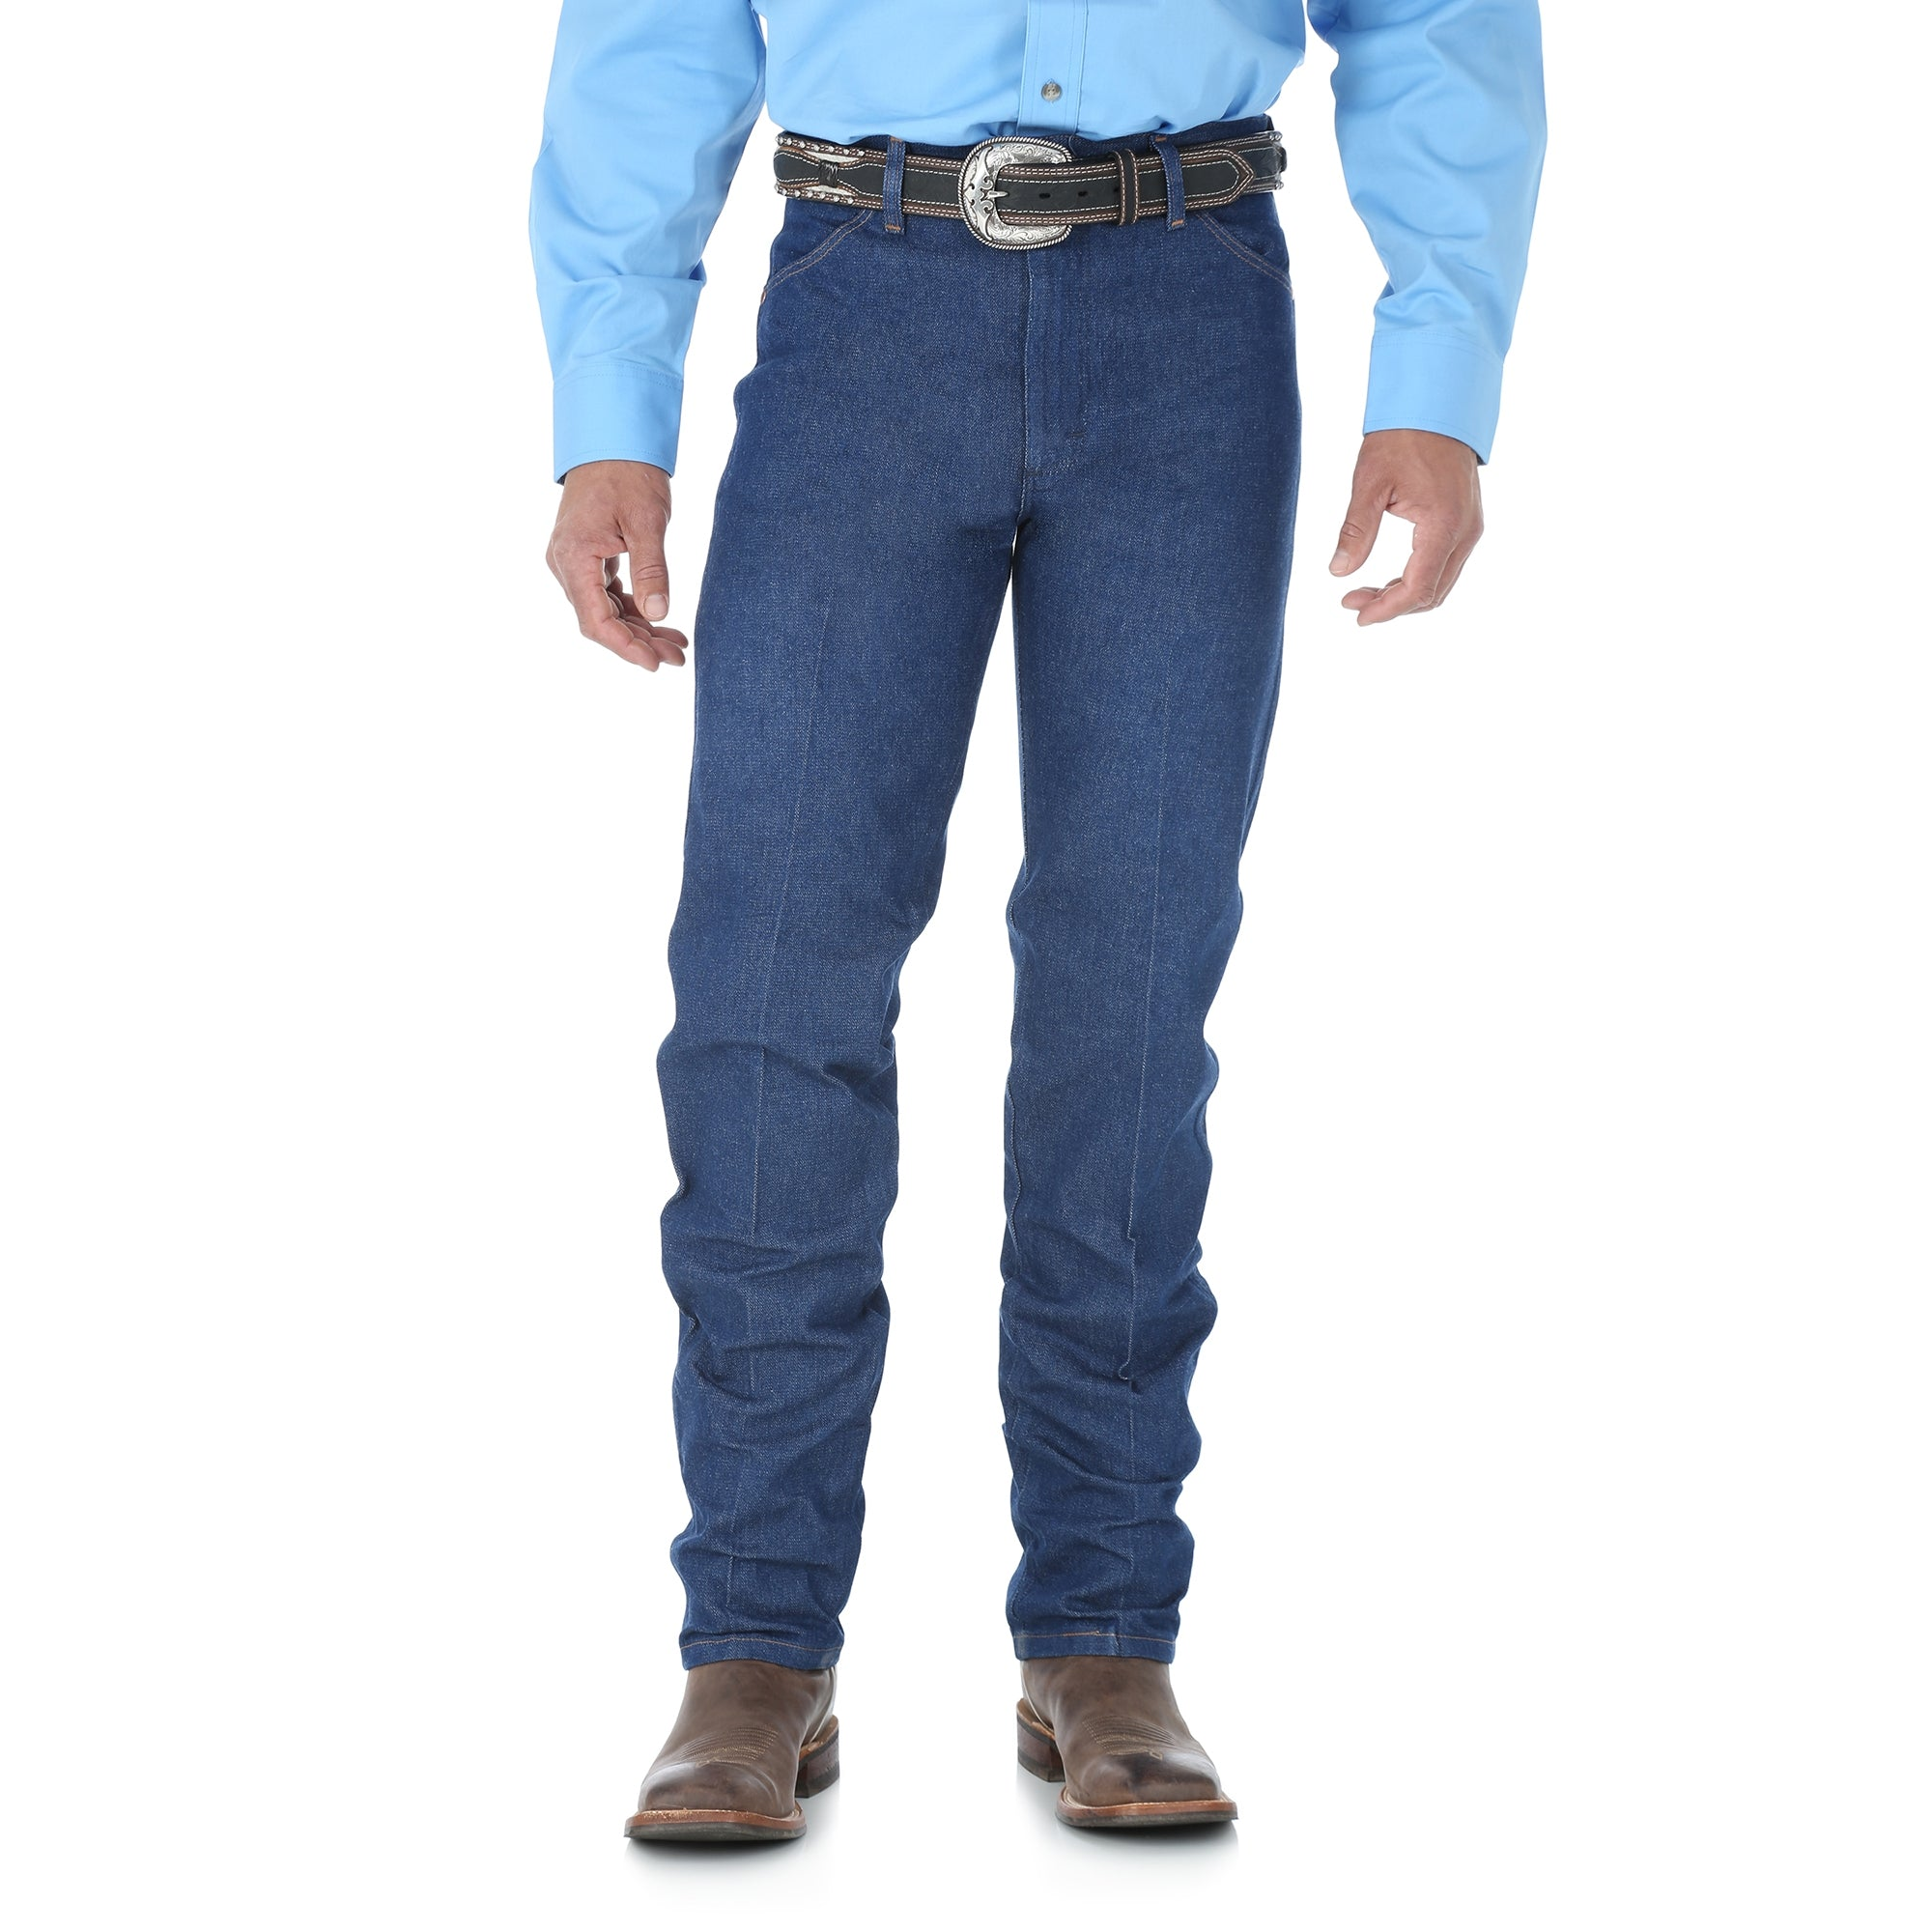 Wrangler Cowboy Cut Original Fit Rigid Indigo